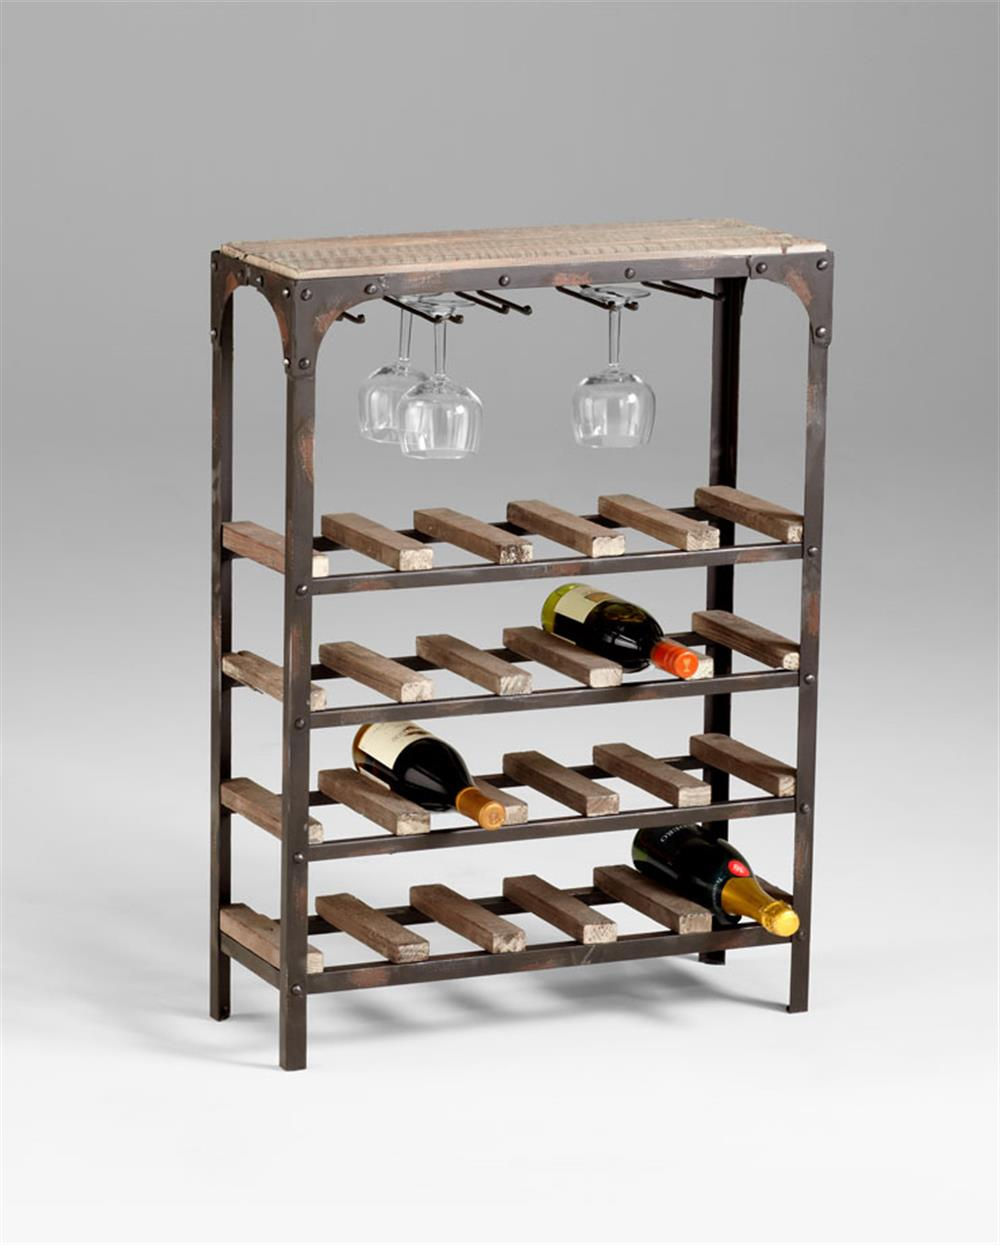 Gallatin industrial metal rustic wood narrow console wine rack for Rustic industrial decor